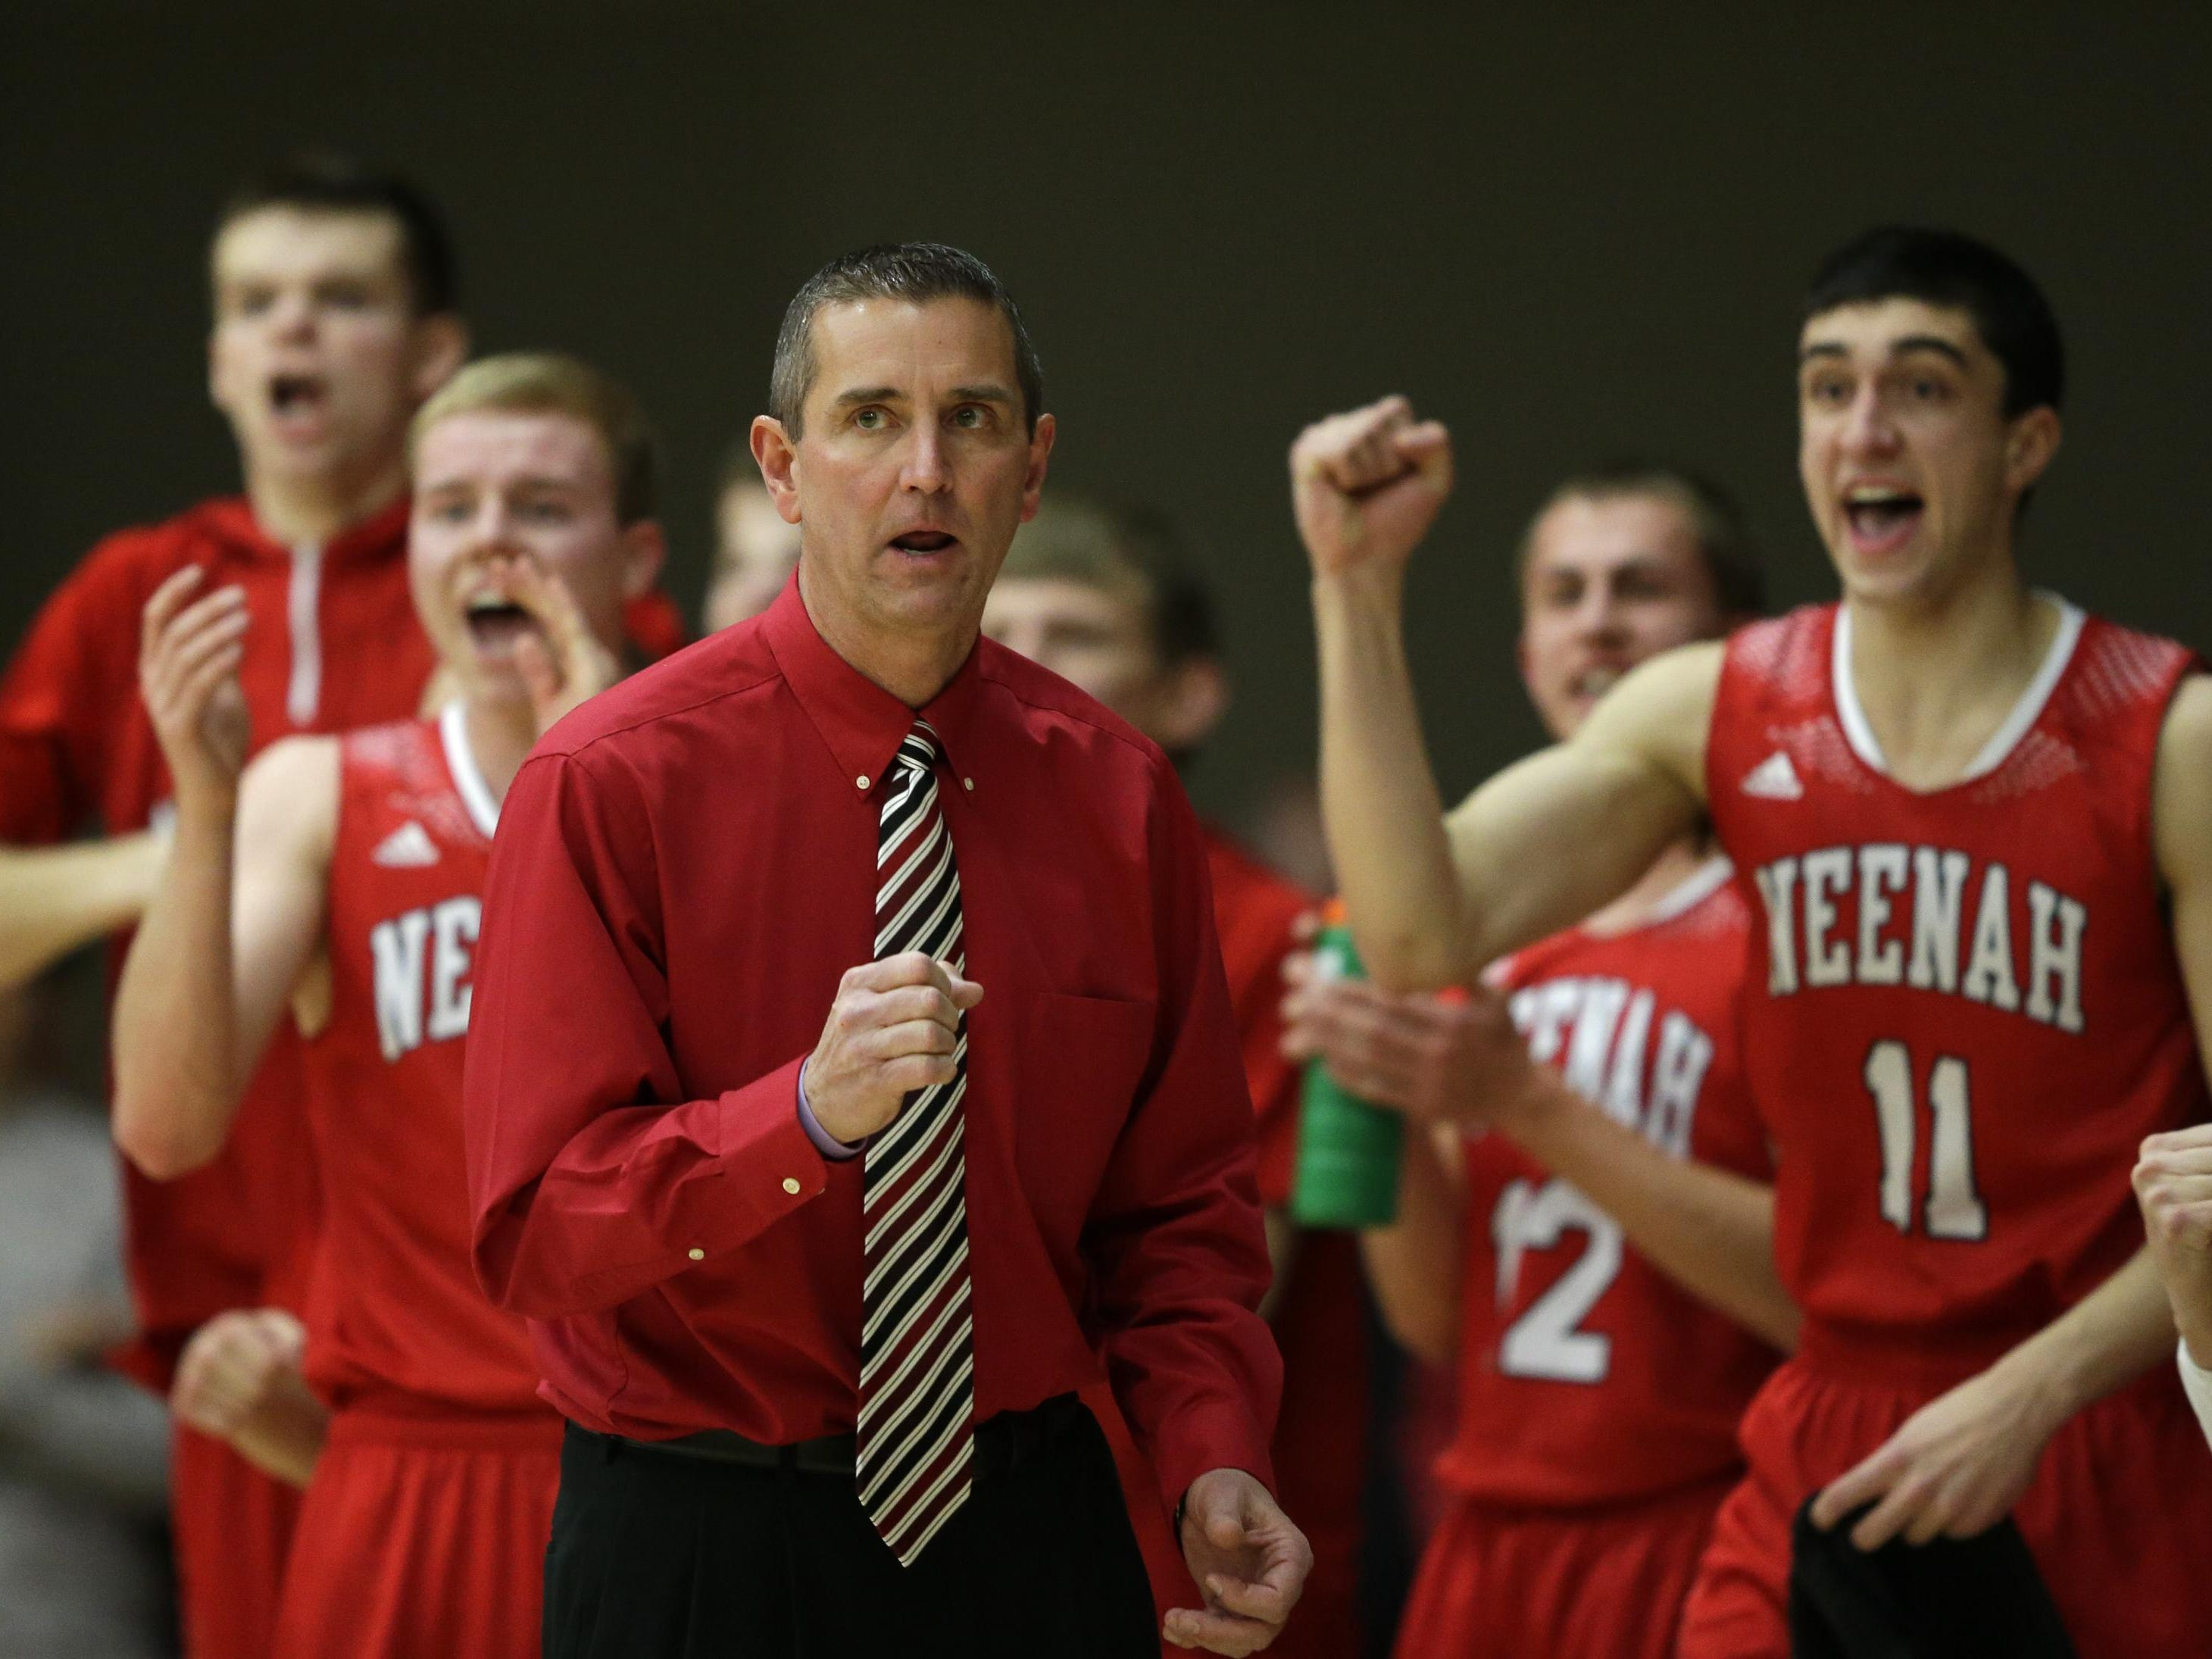 """Former Neenah boys' basketball coach Scott Bork pumps his fist after one of his players scored against Kaukauna during a Fox Valley Association game Feb. 26 in Kaukauna. Bork believes stress from coaching triggered the """"warning stroke"""" he experienced during a game last season."""